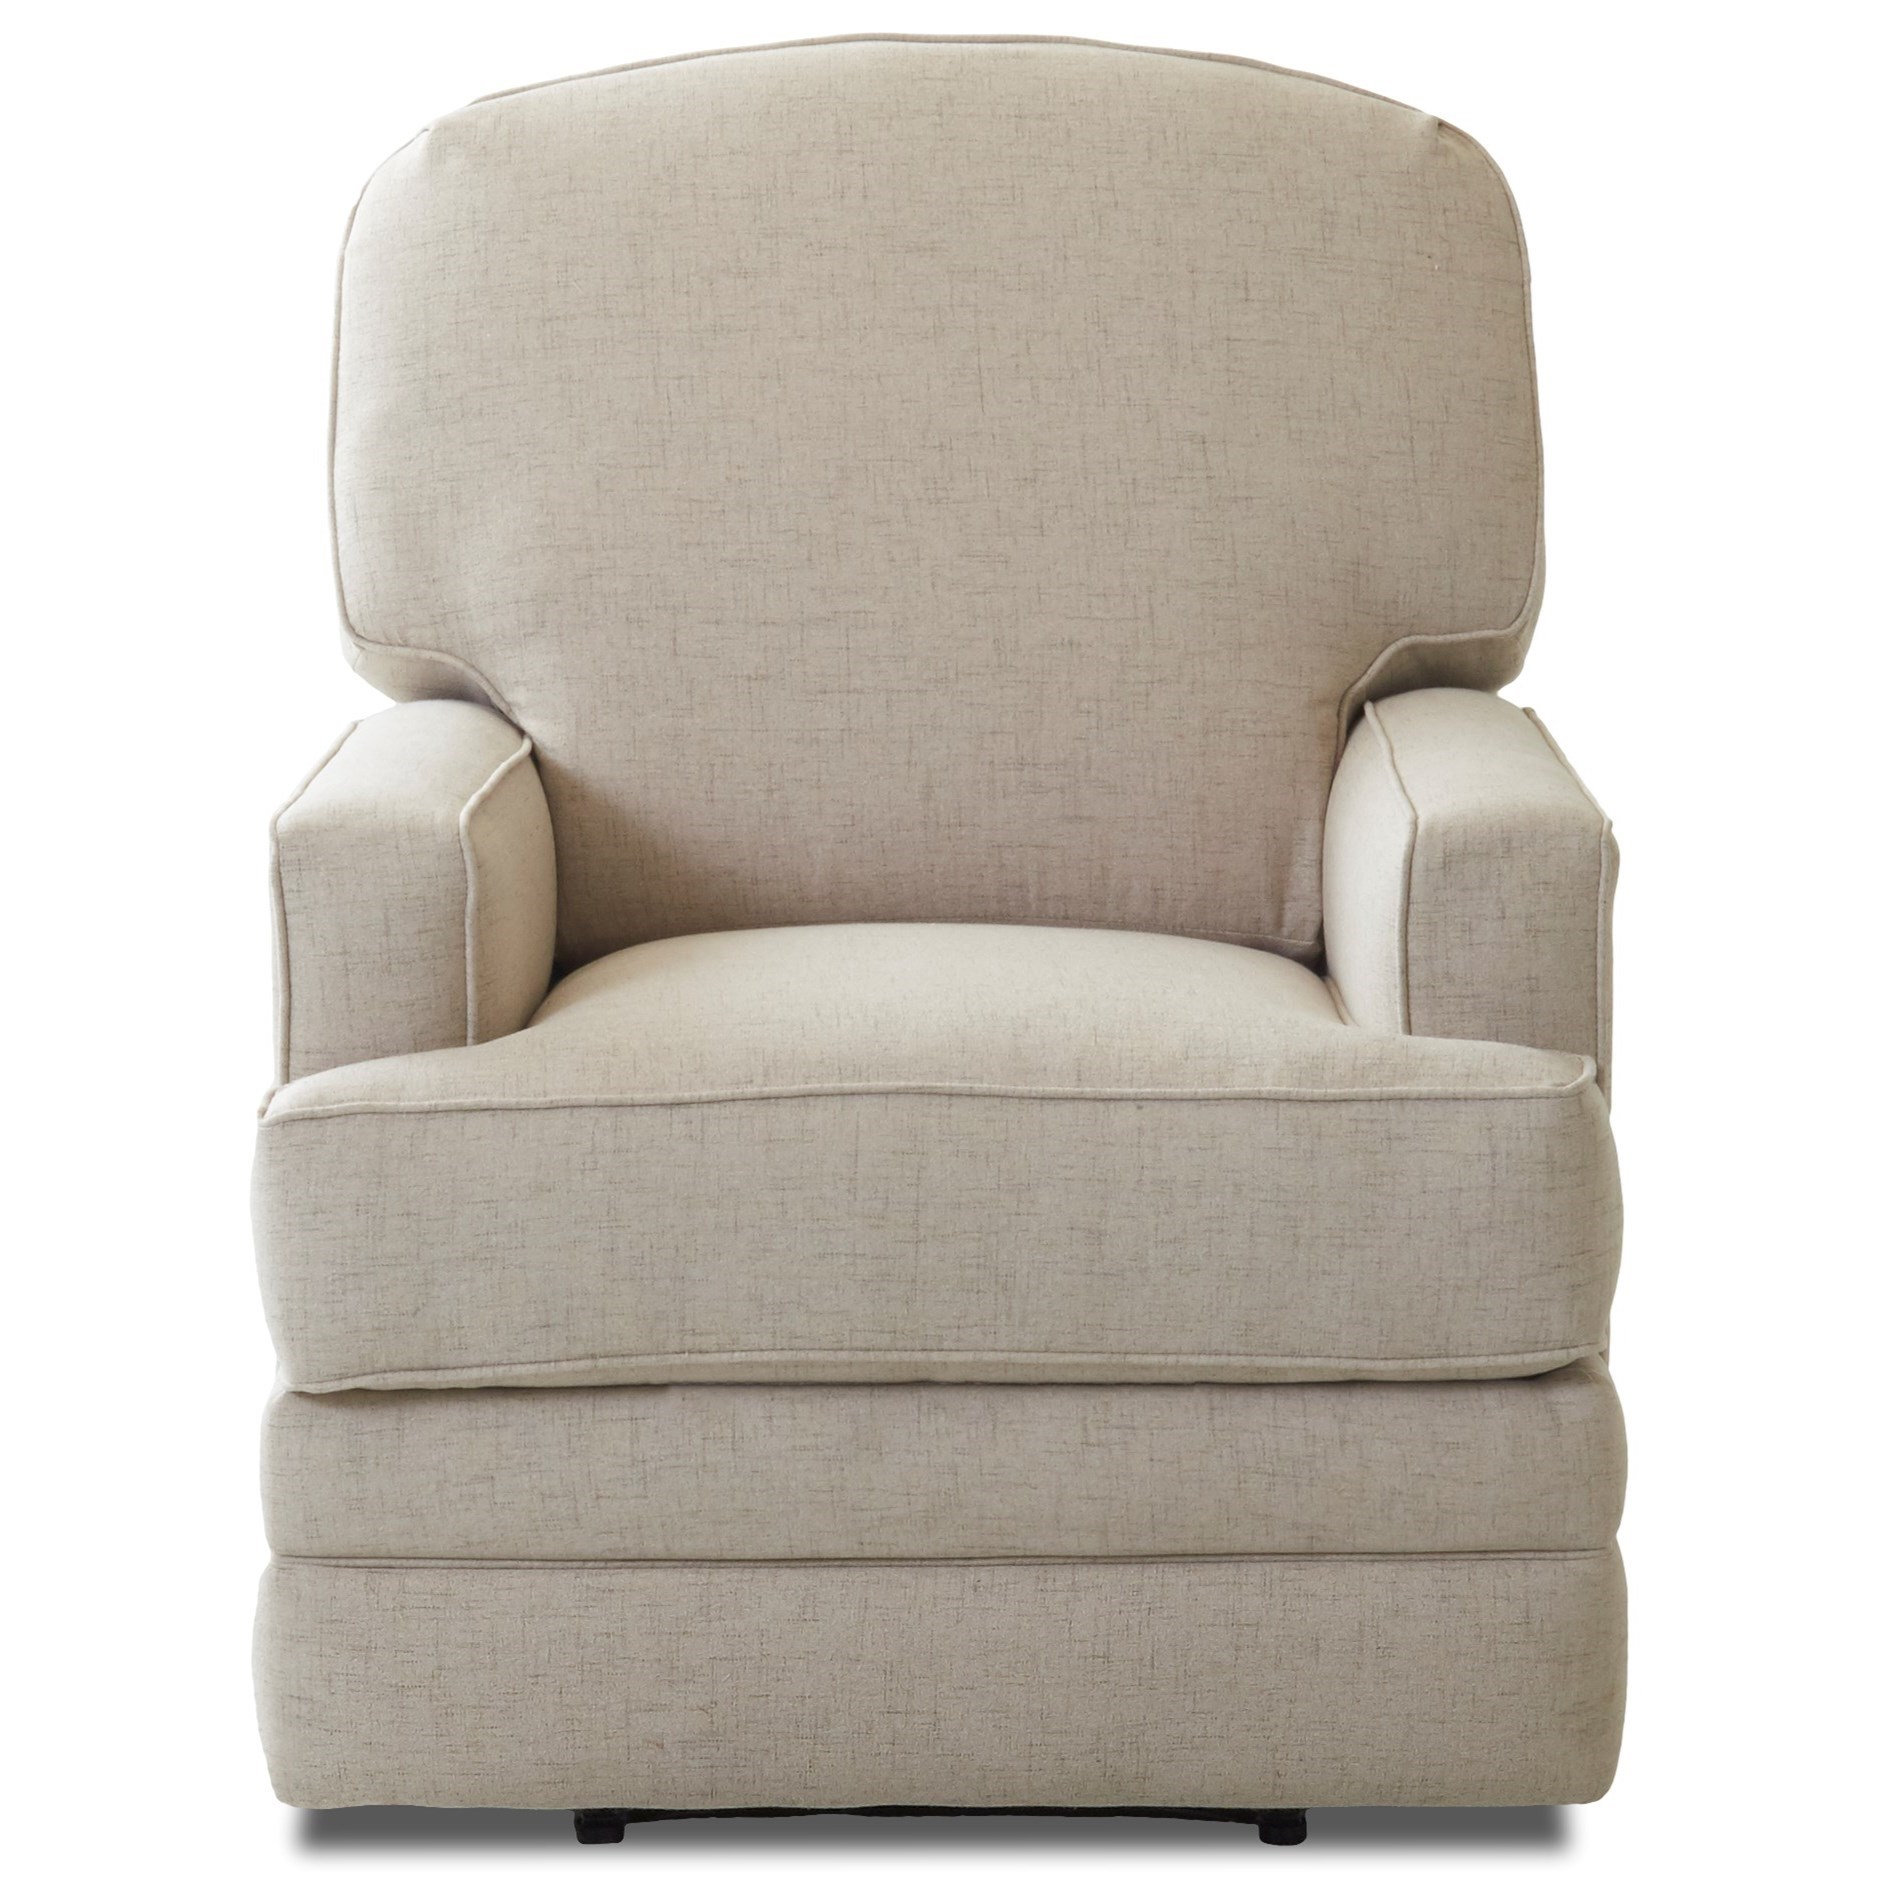 Chapman Casual Reclining Chair by Klaussner at Northeast Factory Direct